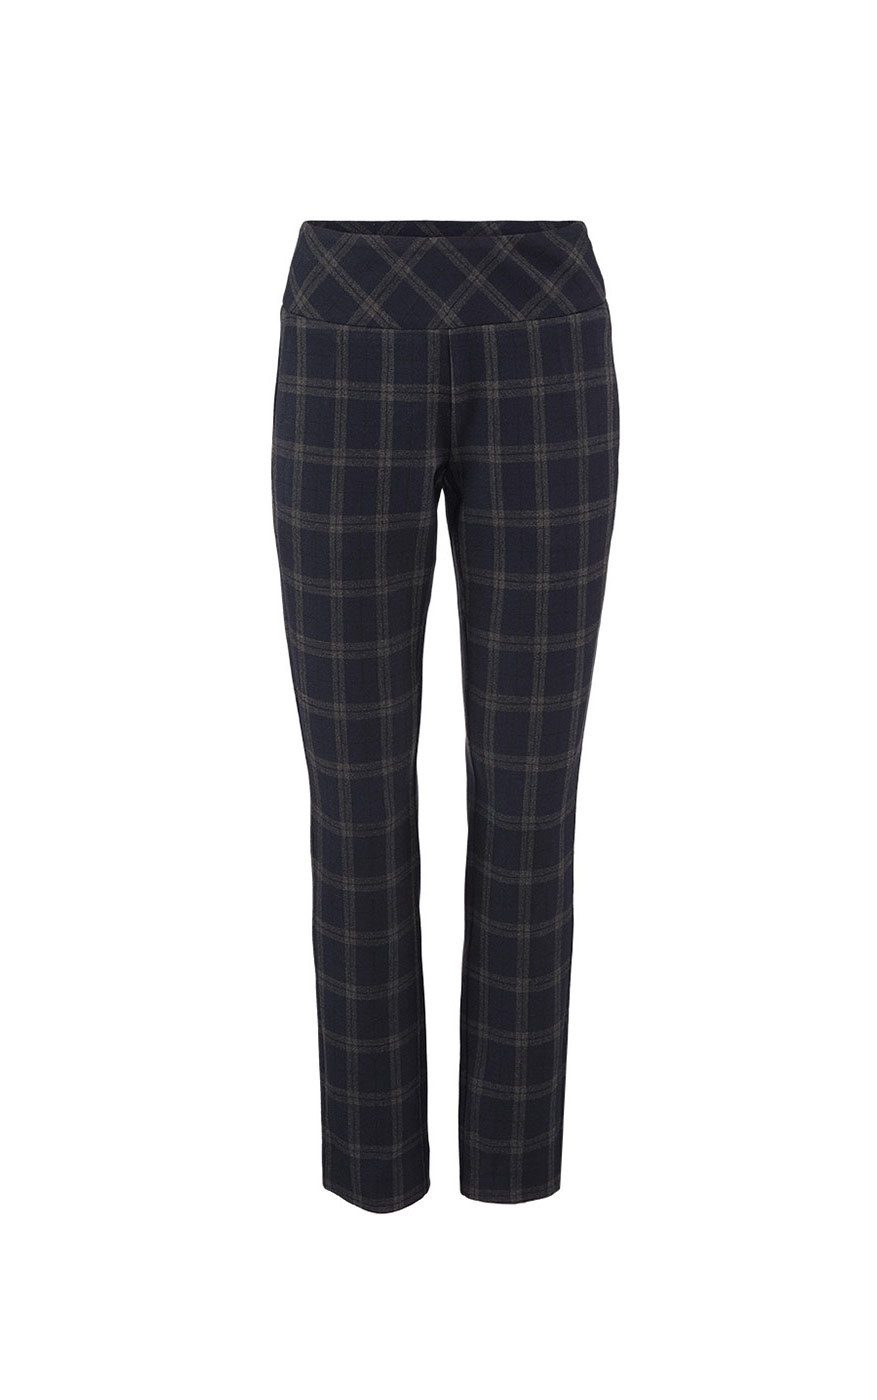 cabi's Connery Trouser